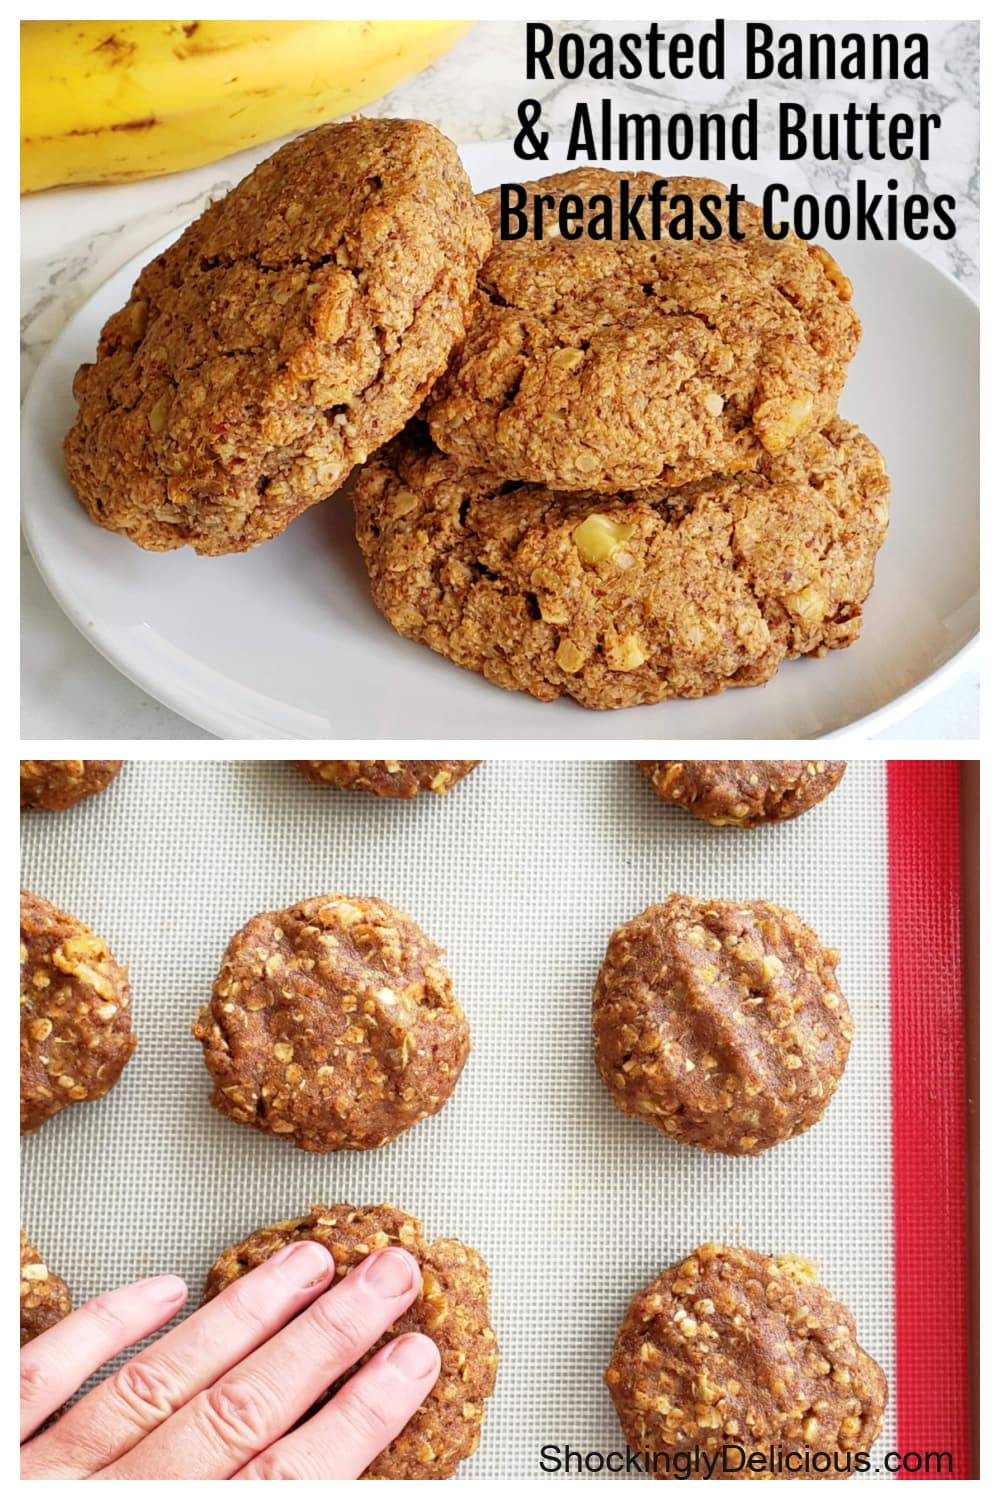 Photo collage for Roasted Banana Almond Butter Breakfast Cookies vegan recipe on ShockinglyDelicious.com